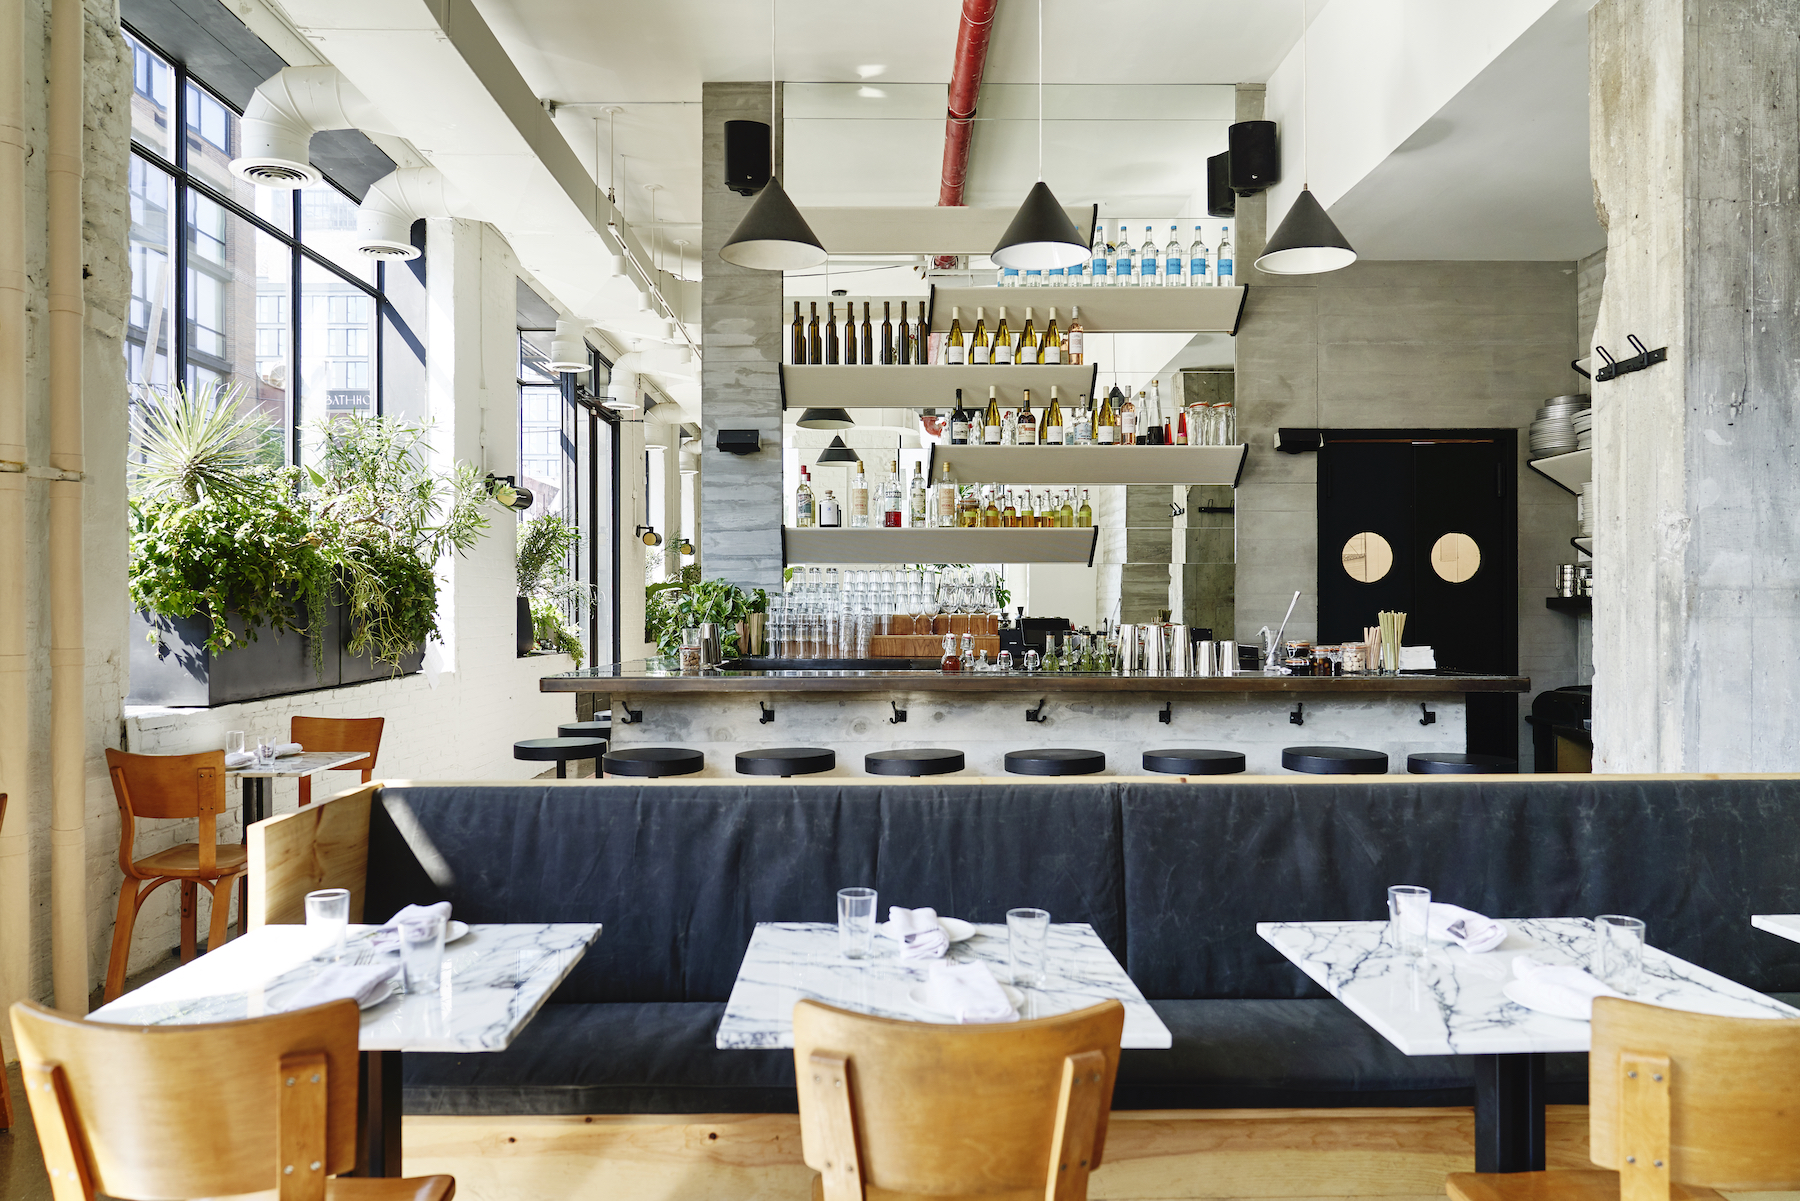 Williamsburg's Fancy New Bathhouse Has a Restaurant from an Eleven Madison Park Alum